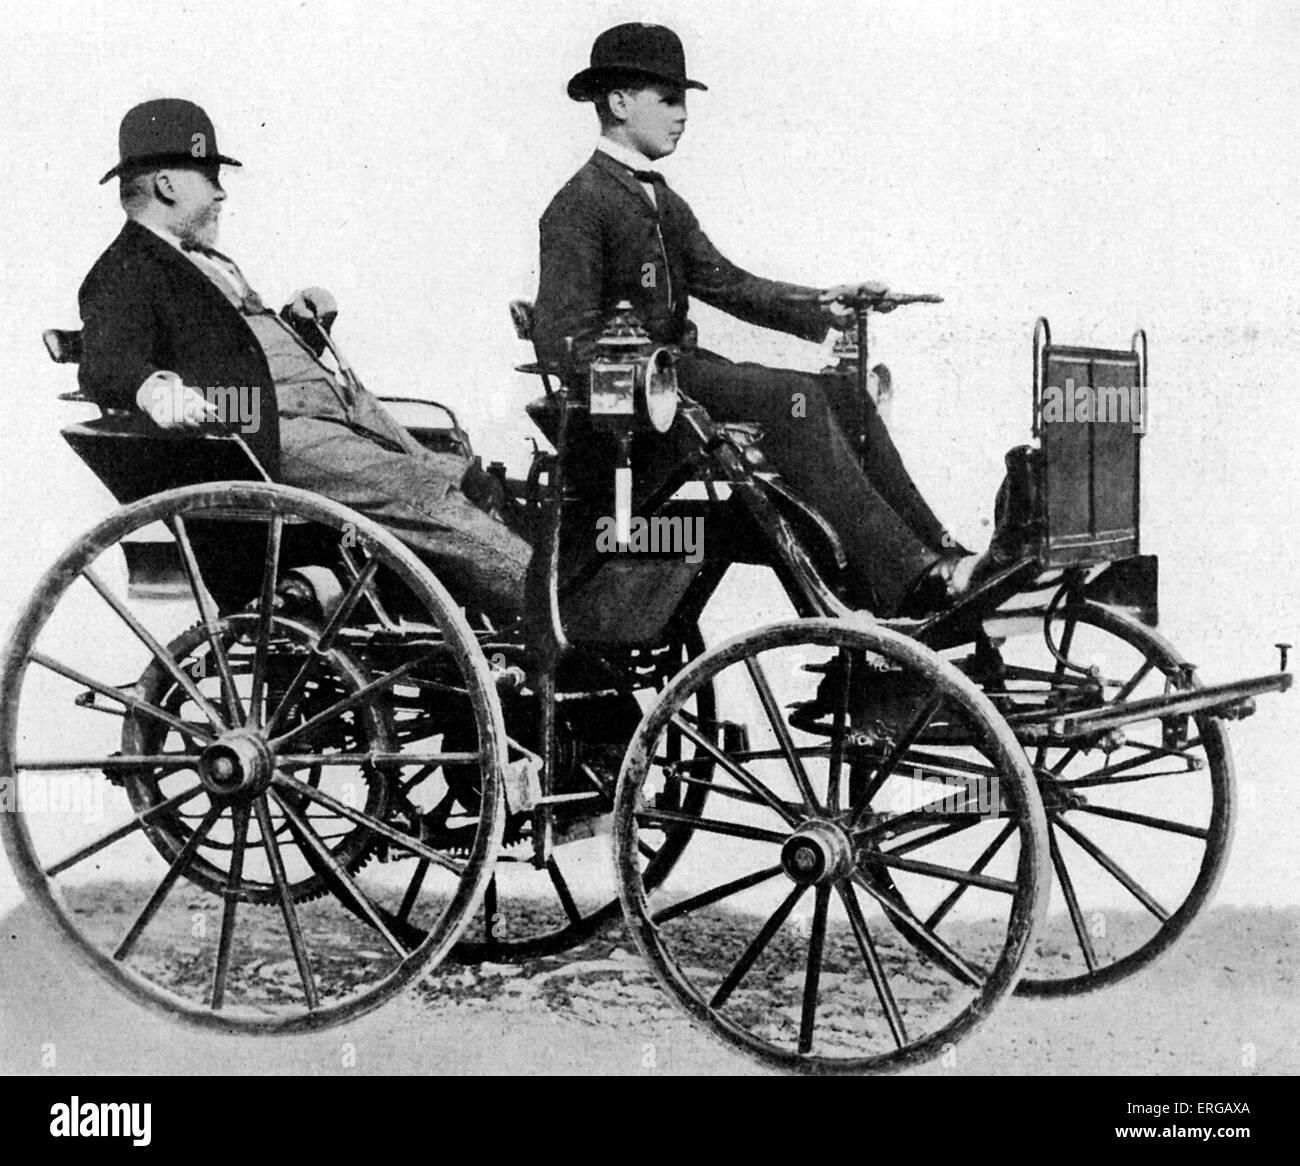 Gottlieb Daimler (17 March 1834 – 6 March 1900) - German pioneer of internal-combustion engines and automobile development; - Stock Image